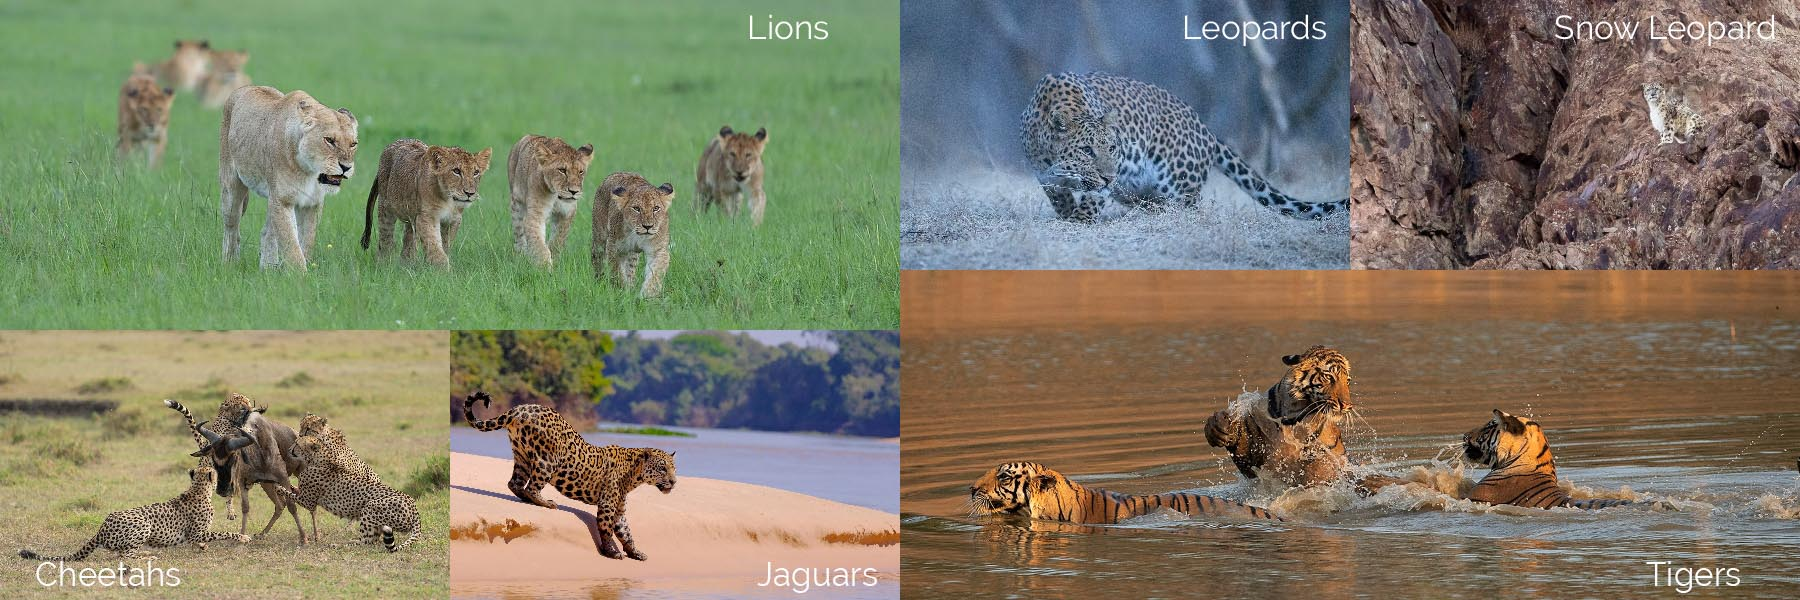 Big cat safaris around the world